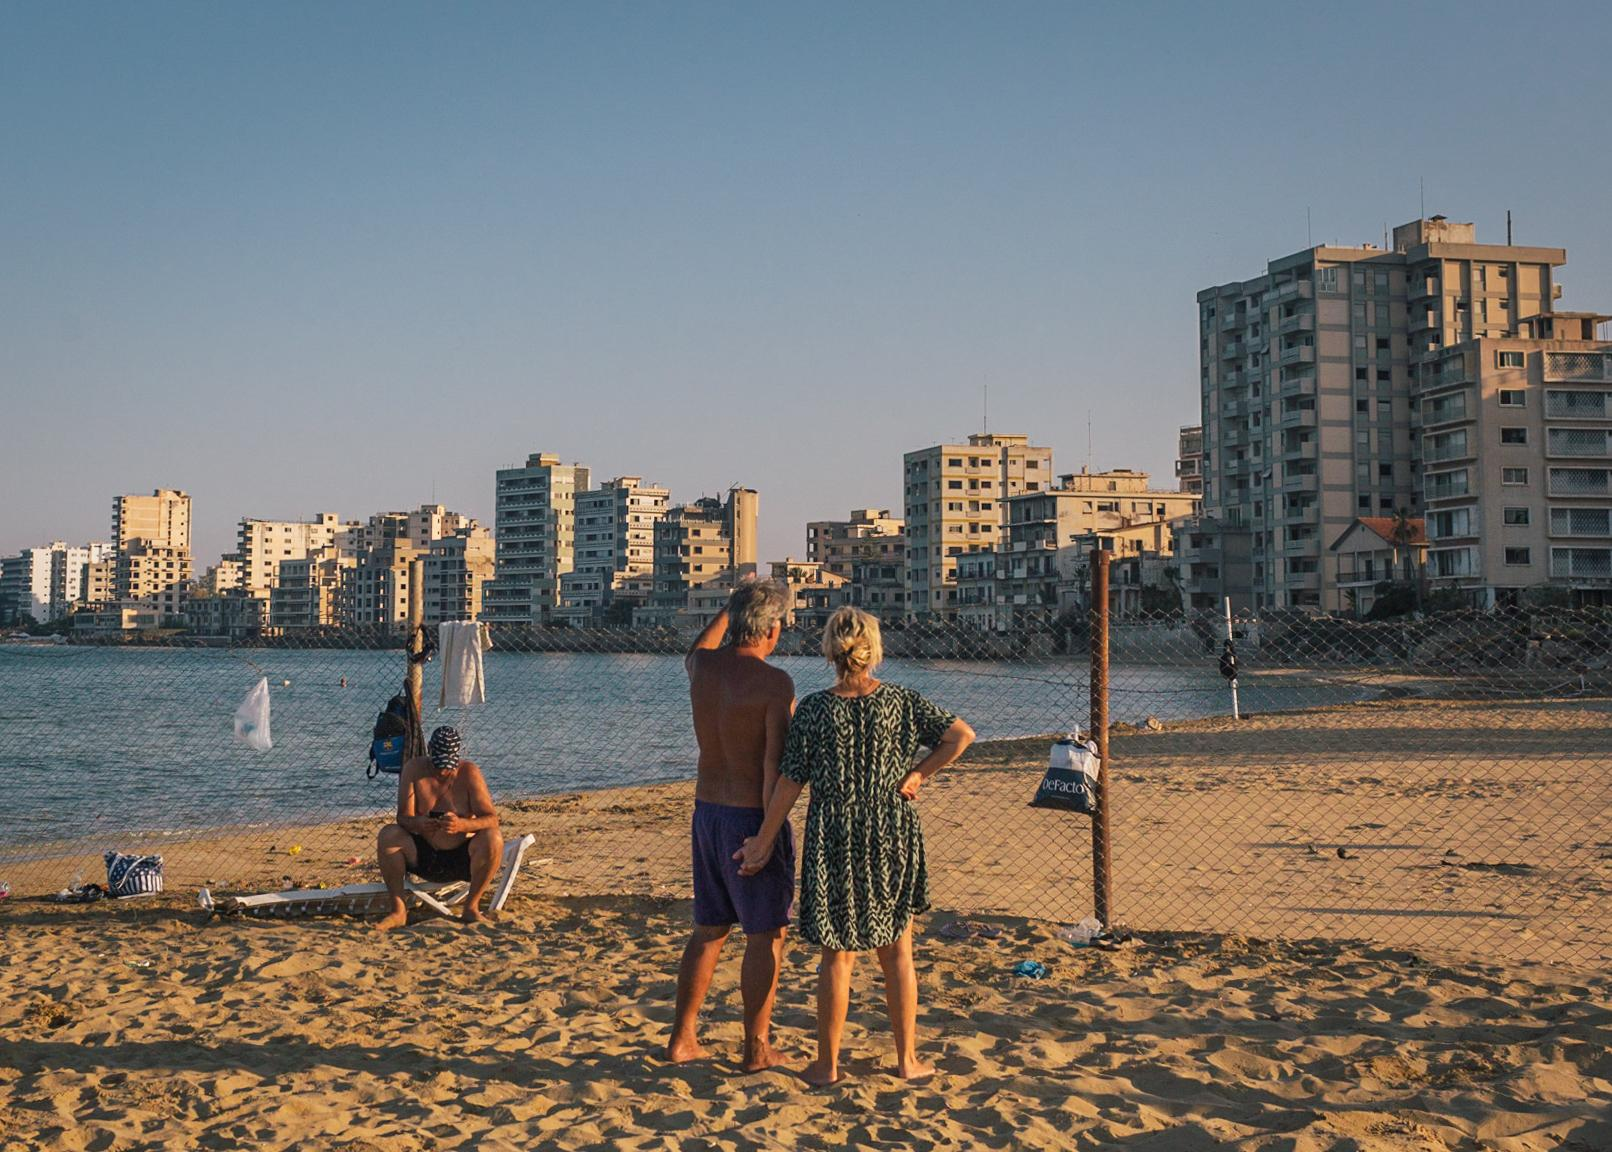 Beach view from Turkish territory to the ghost town in Famagusta.